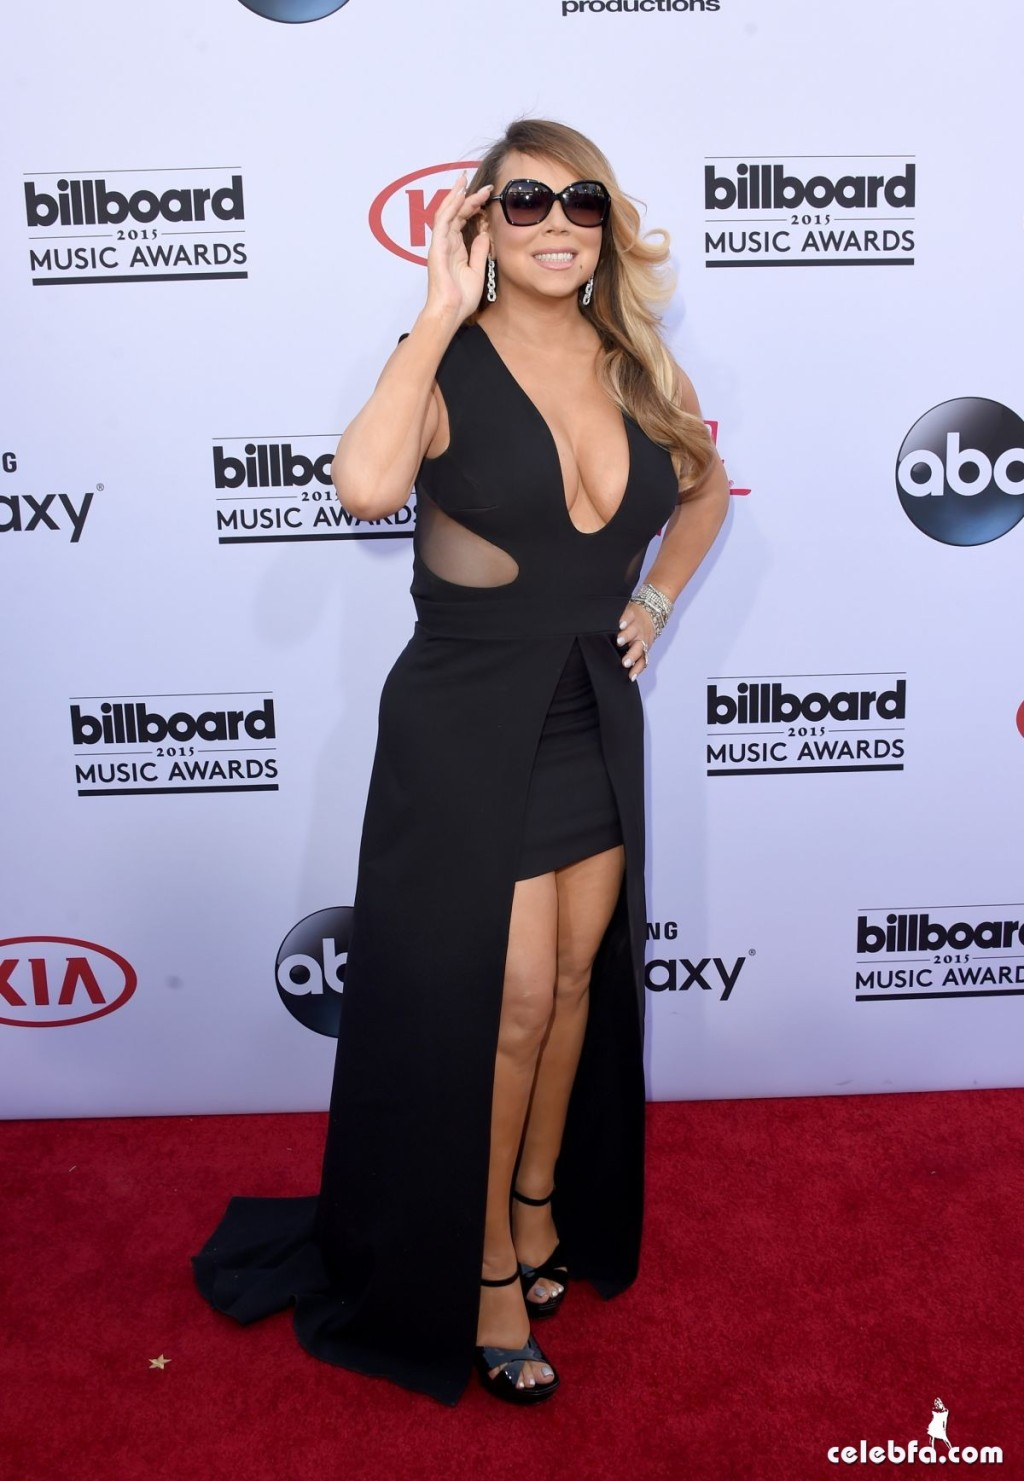 mariah-carey-2015-billboard-music-awards (2)